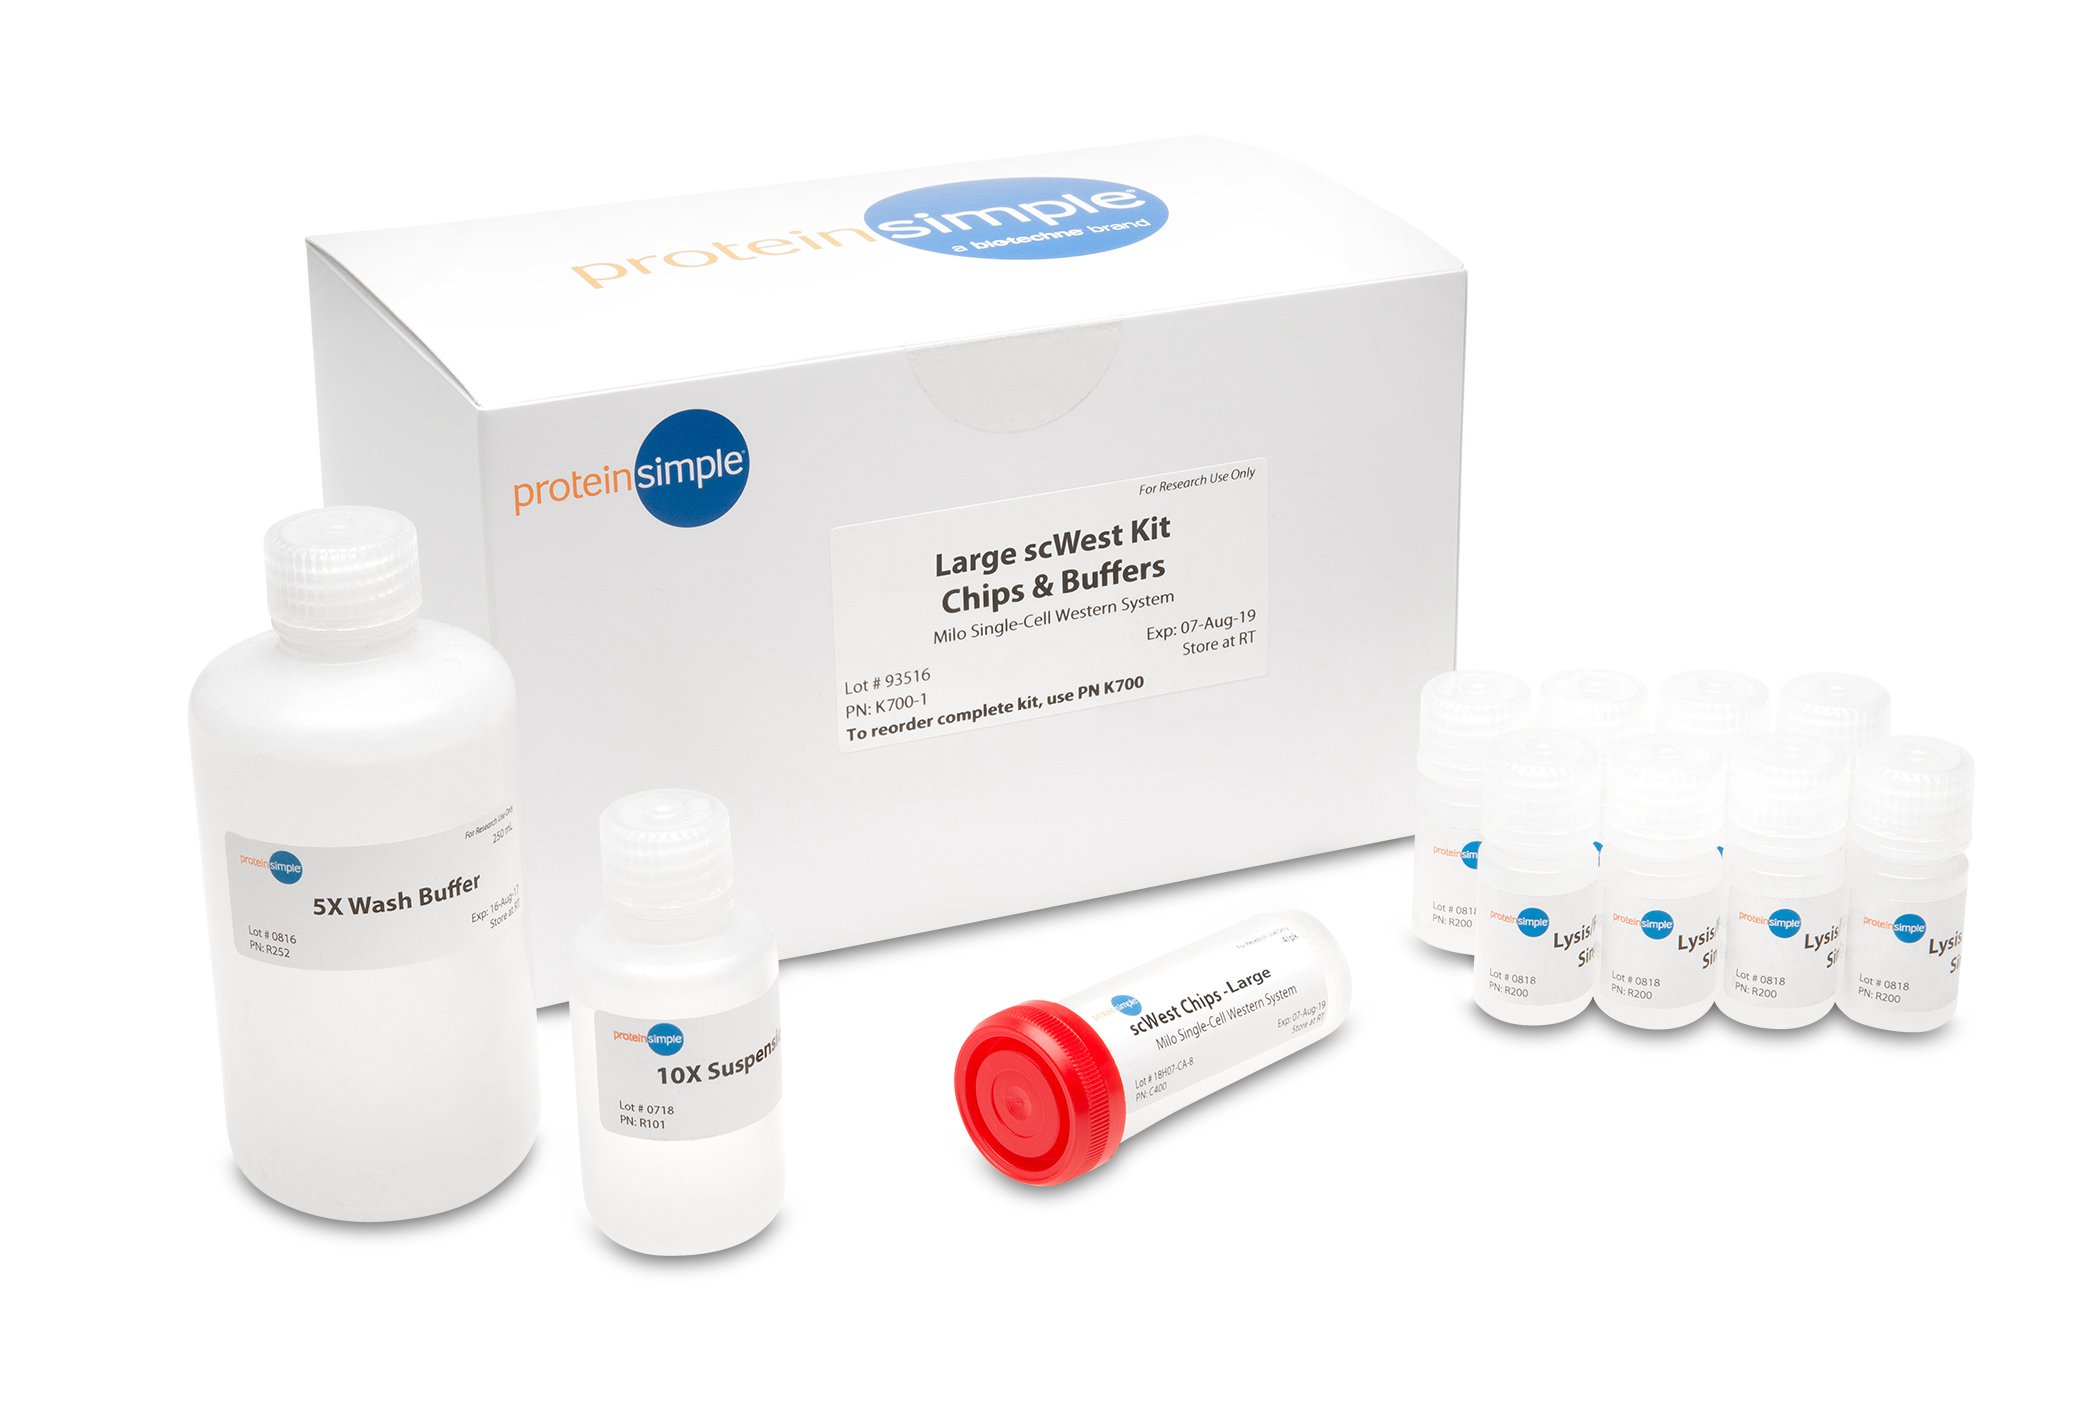 ProteinSimple Large scWest Kit for Single-Cell Western